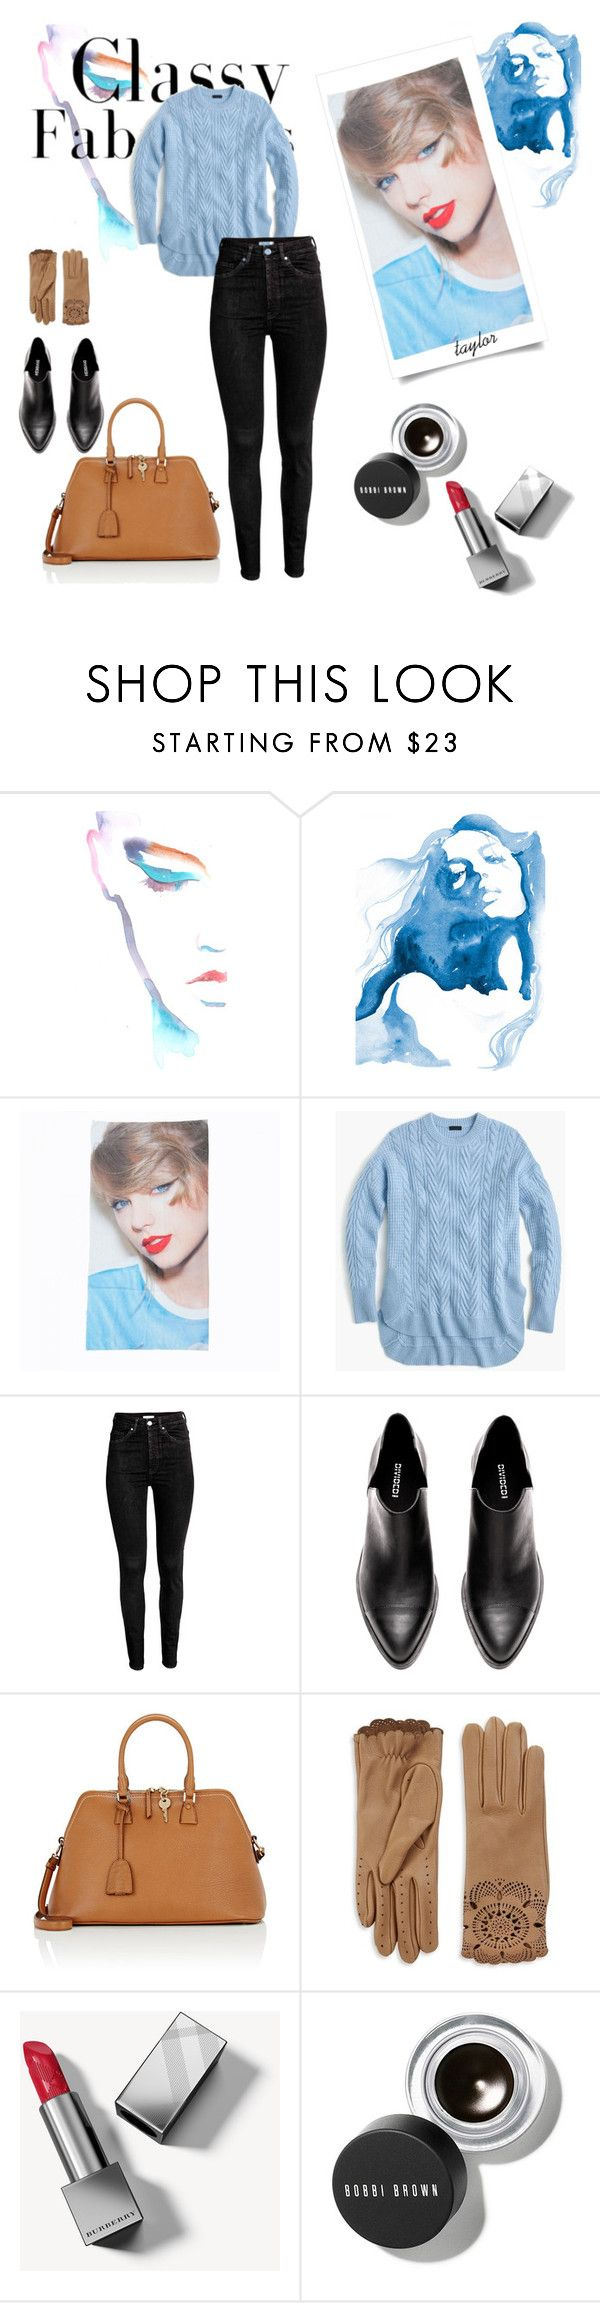 """""""dressing taylor sift"""" by style-by-j on Polyvore featuring WALL, J.Crew, Maison Margiela, Burberry and Bobbi Brown Cosmetics"""